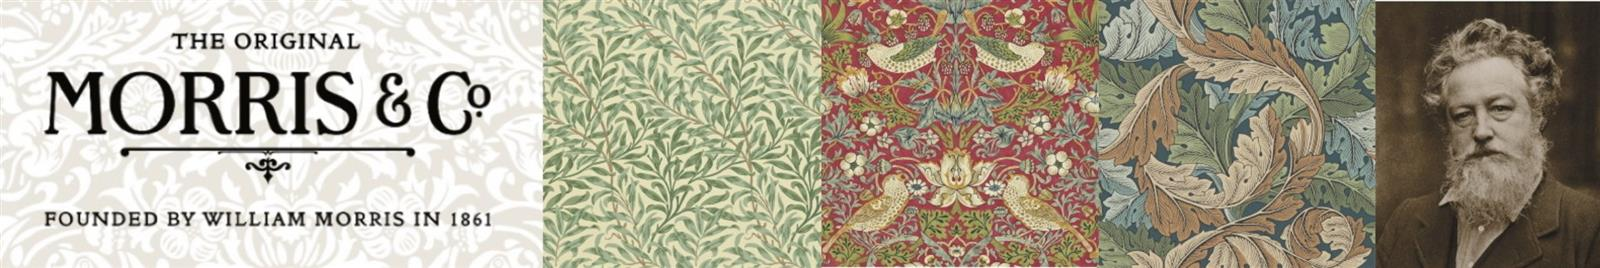 Morris and Co Wallpaper-Indian